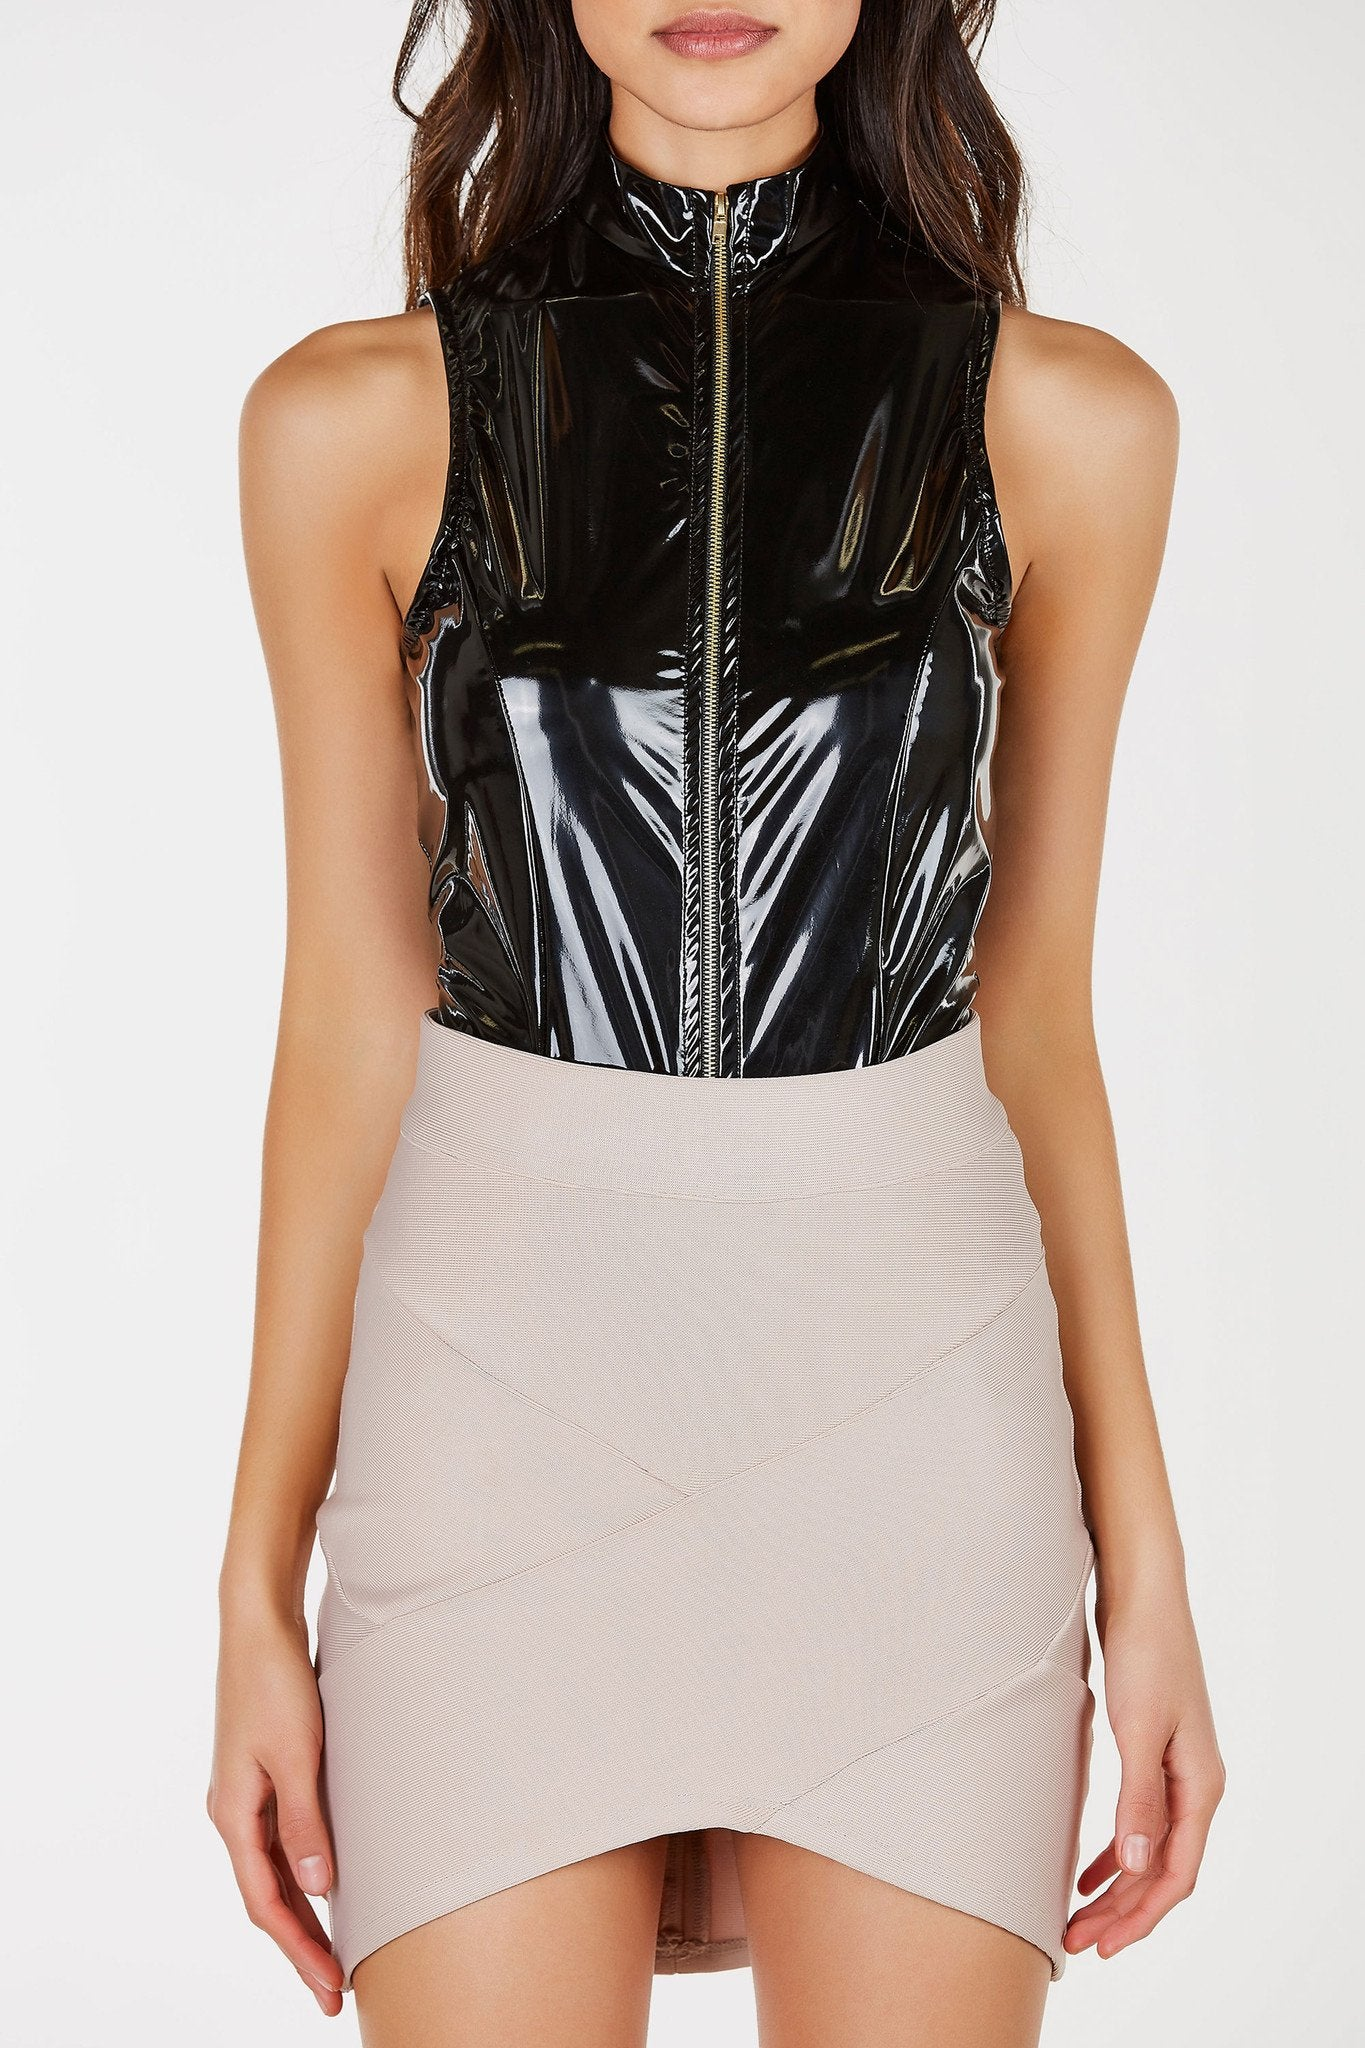 A sexy sleeveless bodysuit with a shiny patent leather finish. Mock neckline with a functional zipper down the front for closure and added detail. Easy snap on button closure with a cheeky cut at bottom.